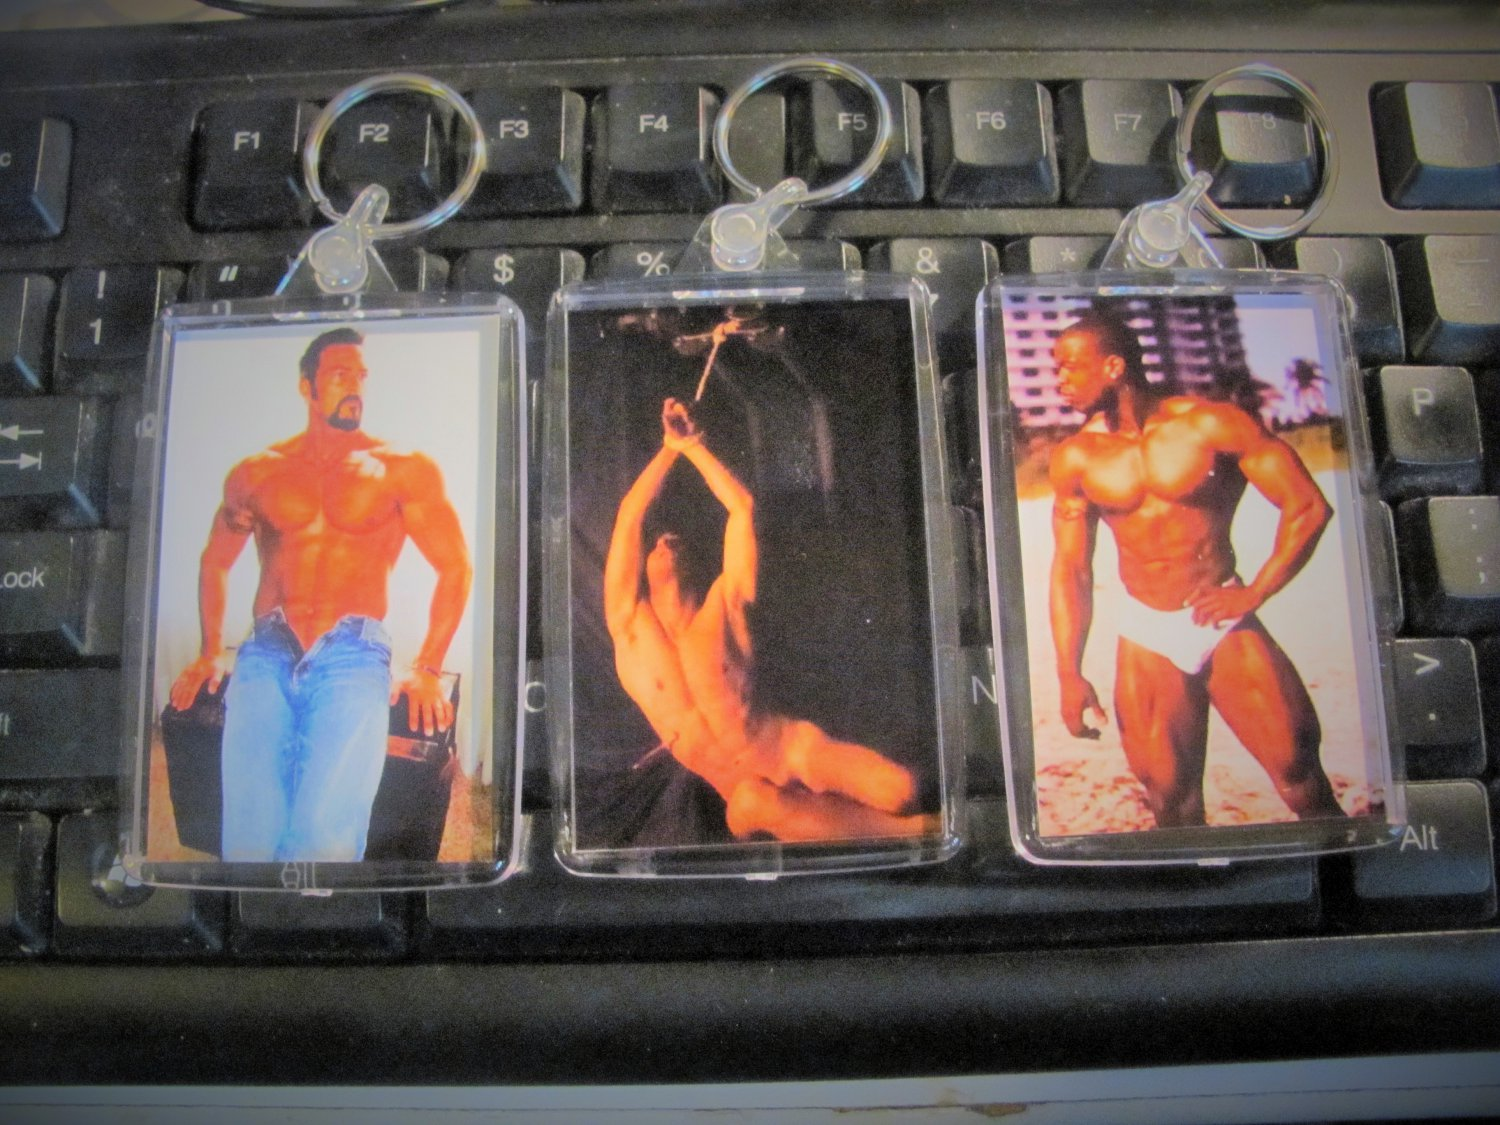 Hunky guys, muscle men key chains, large size, double sided, choice of 6 fetish men.